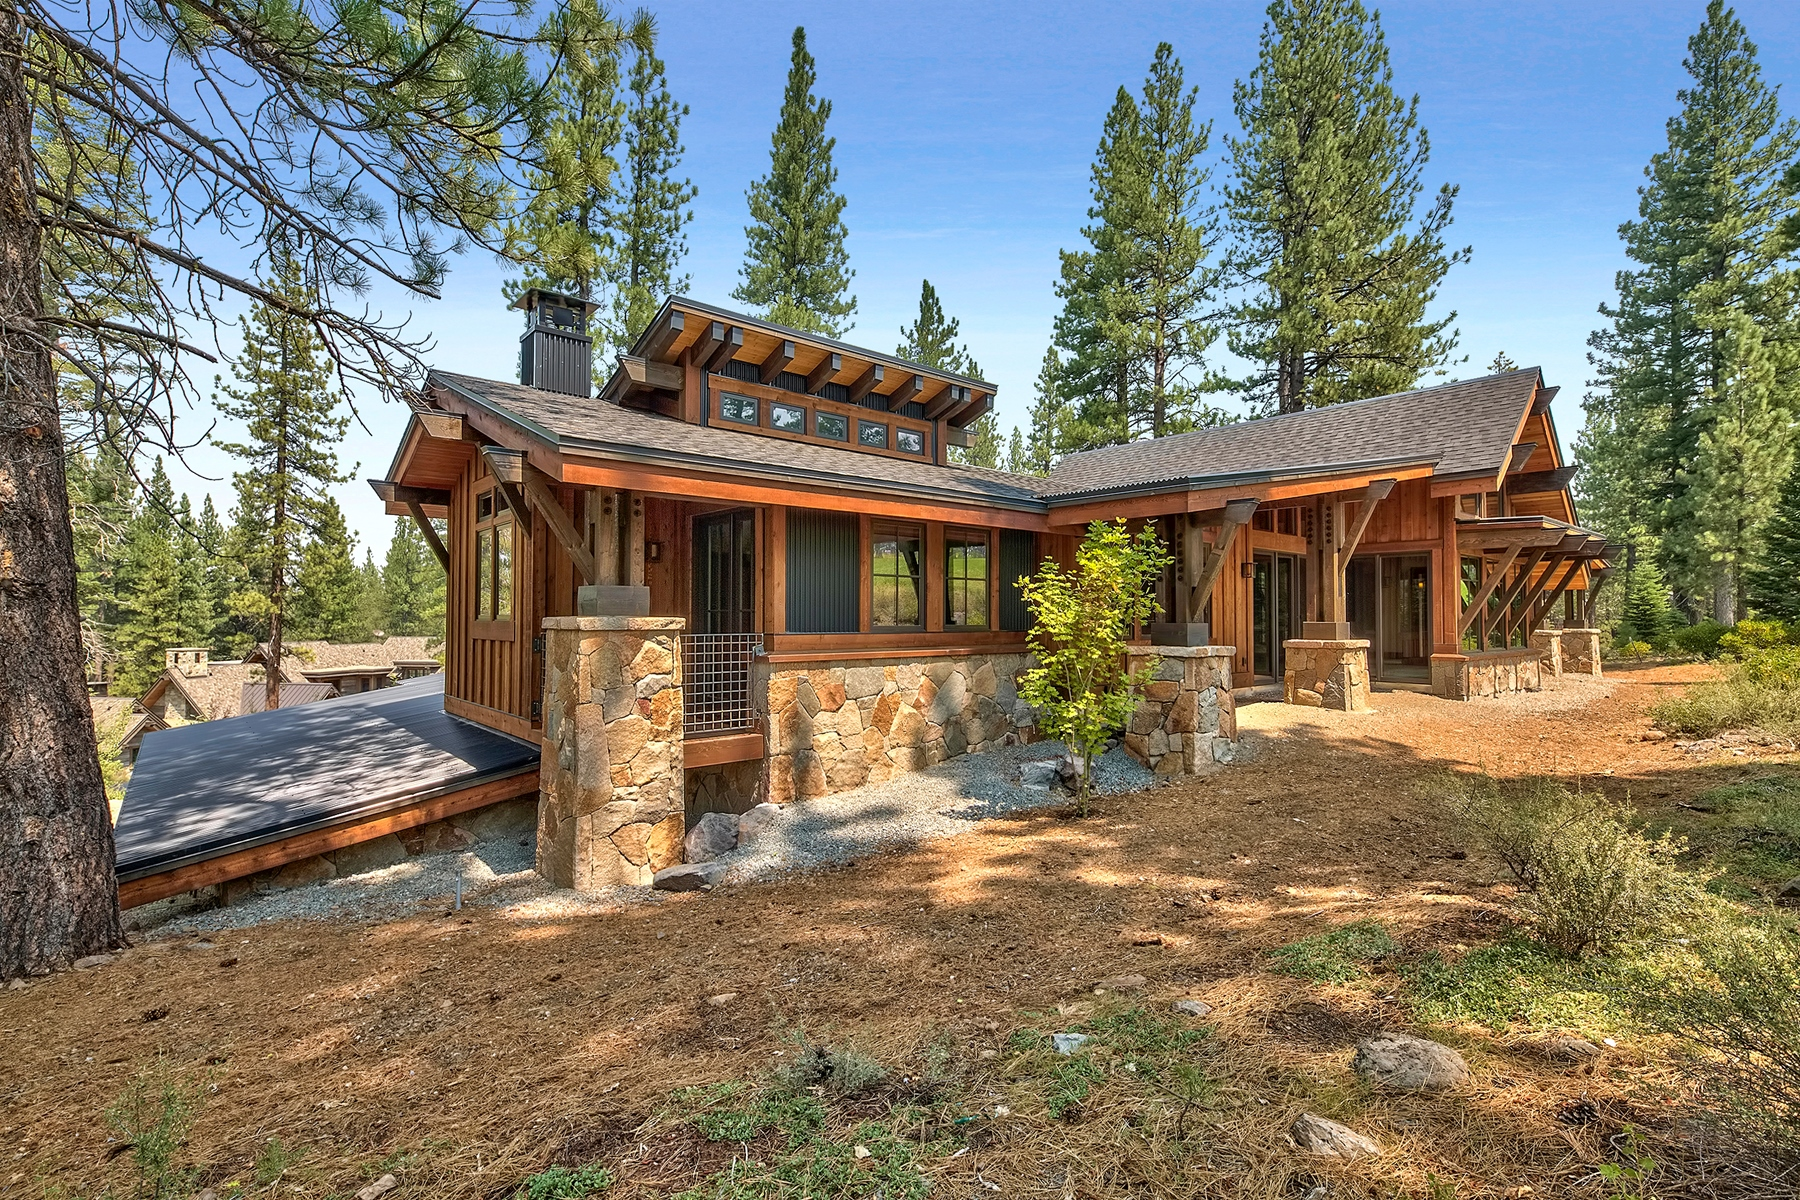 Additional photo for property listing at 13228 Snowshoe Thompson Circle, Truckee, California 96161 13228 Snowshoe Thompson Circle Truckee, California 96161 United States